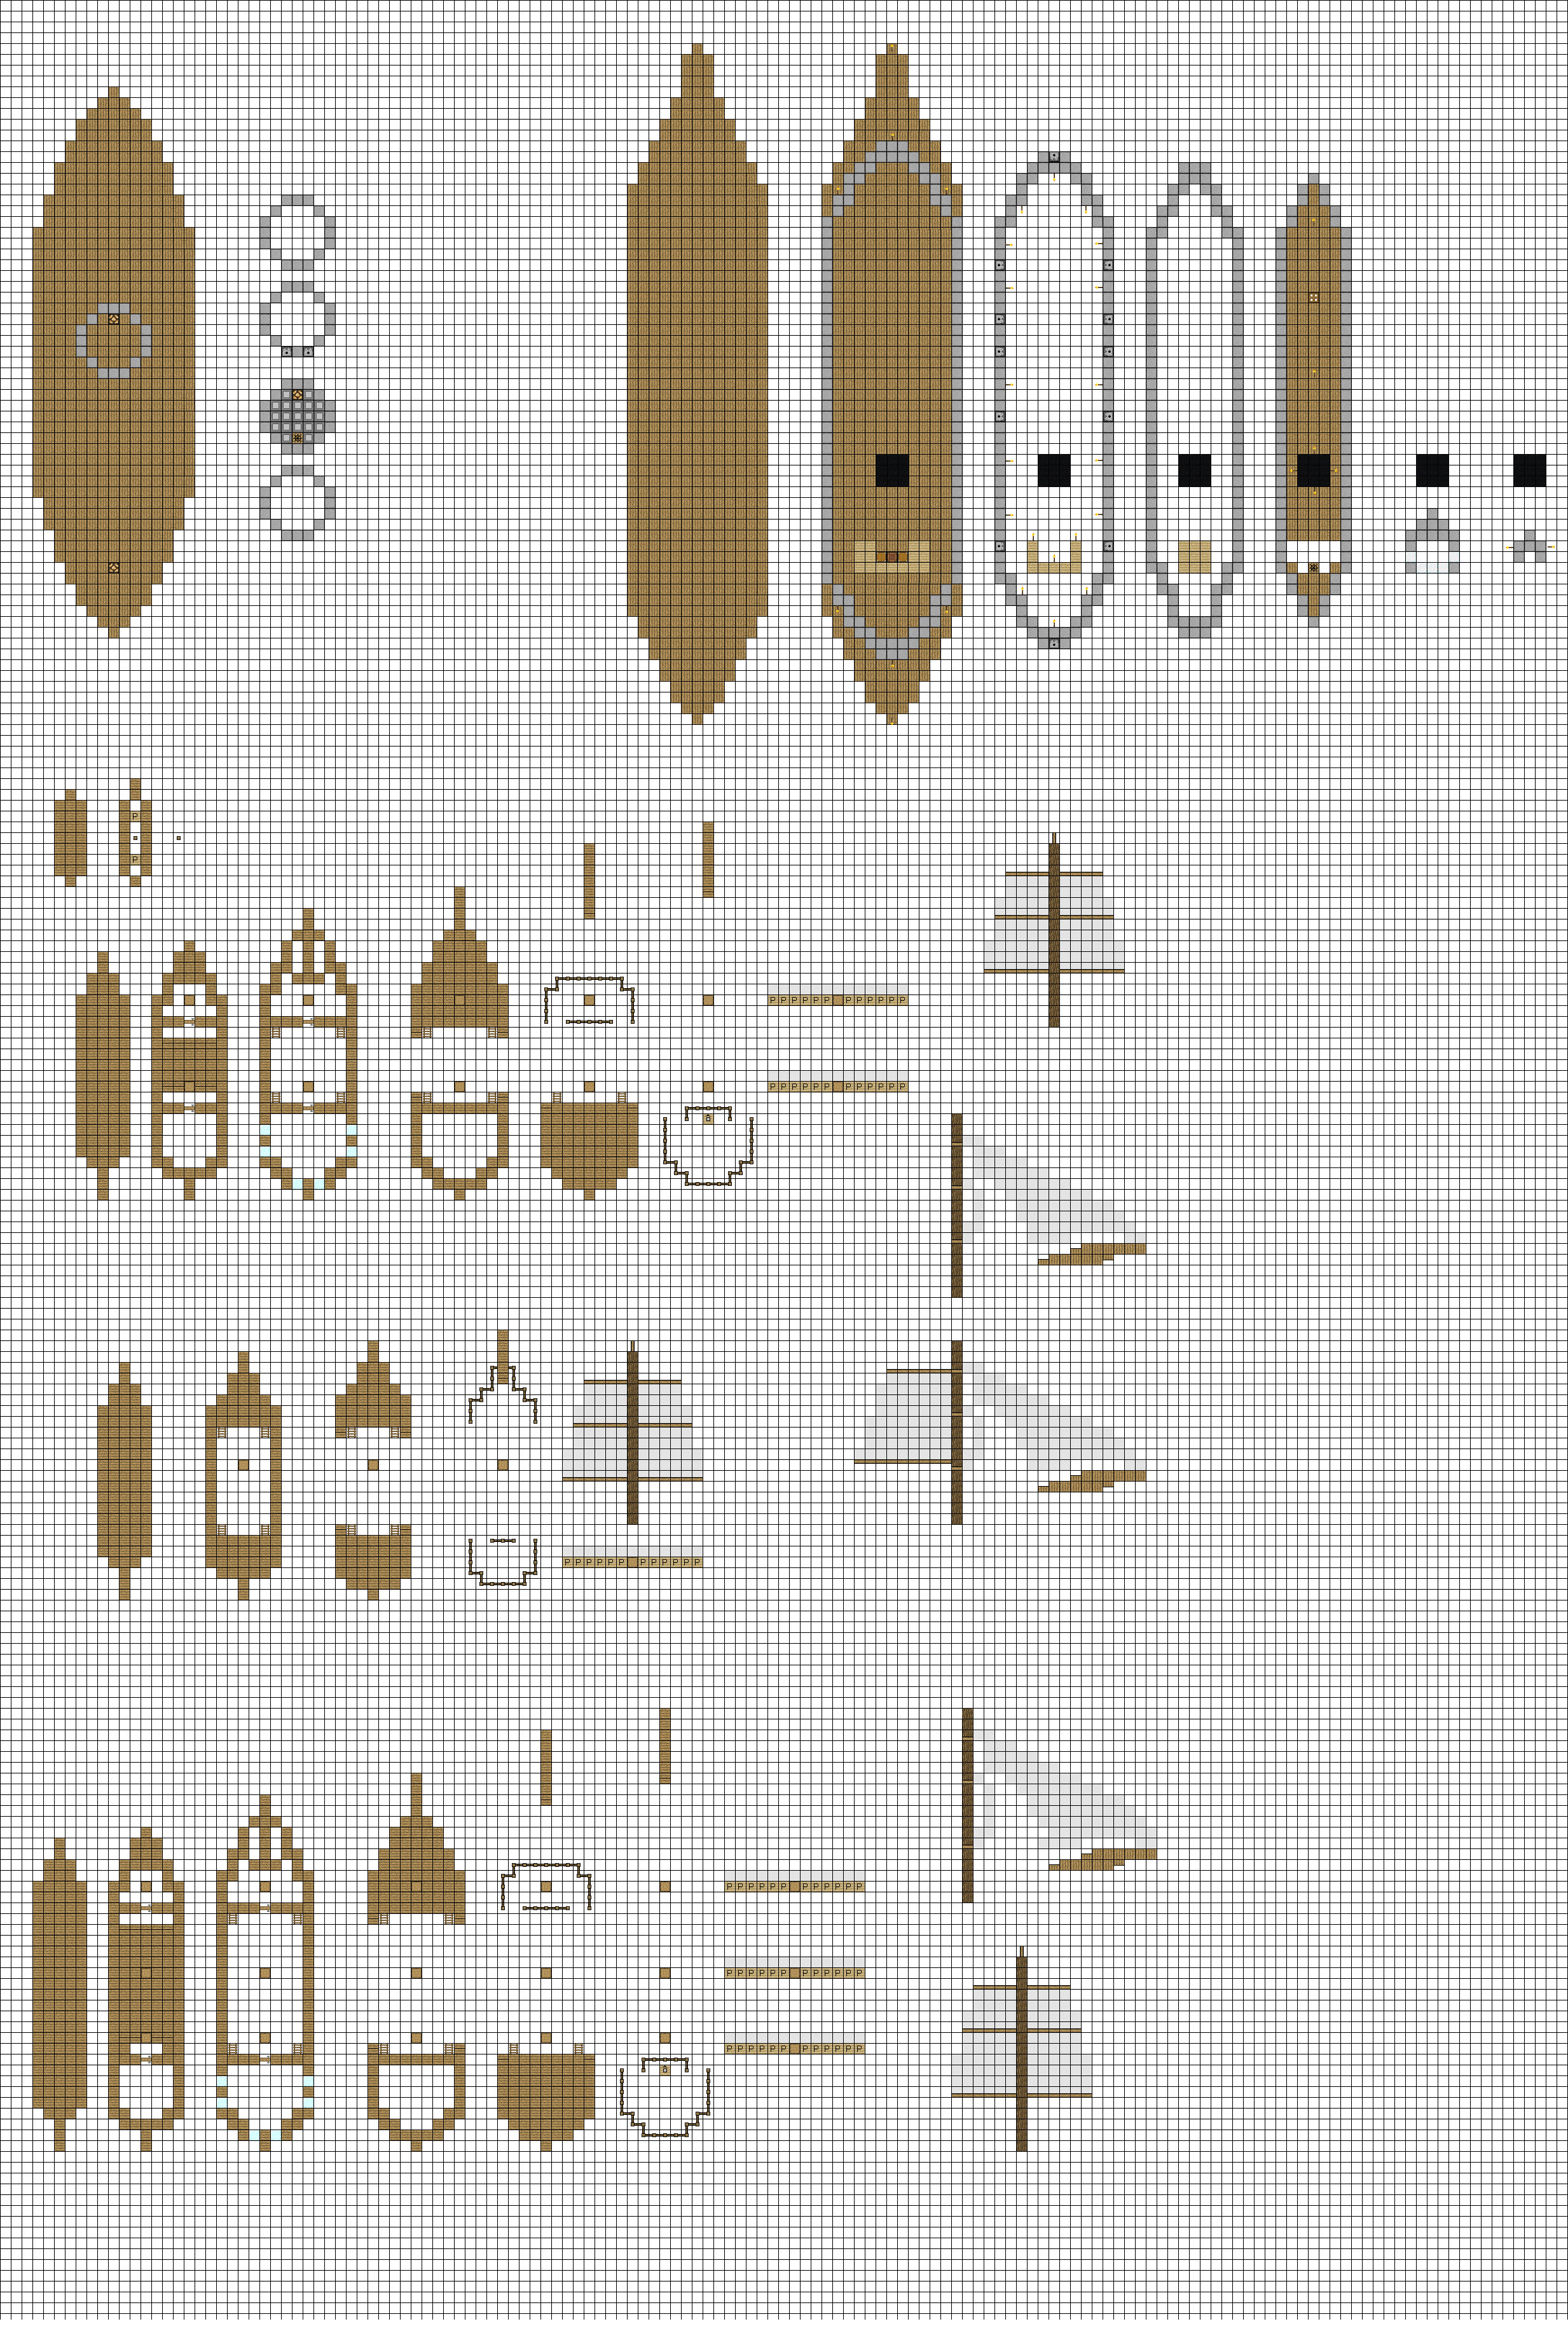 Ship ideas by ColtCoyote on DeviantArt